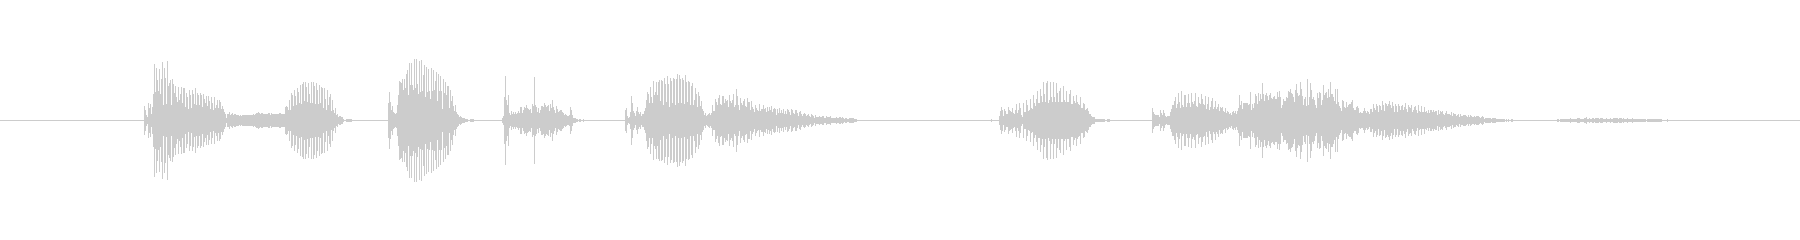 Since that time I ... (female)'s unreproduced waveform